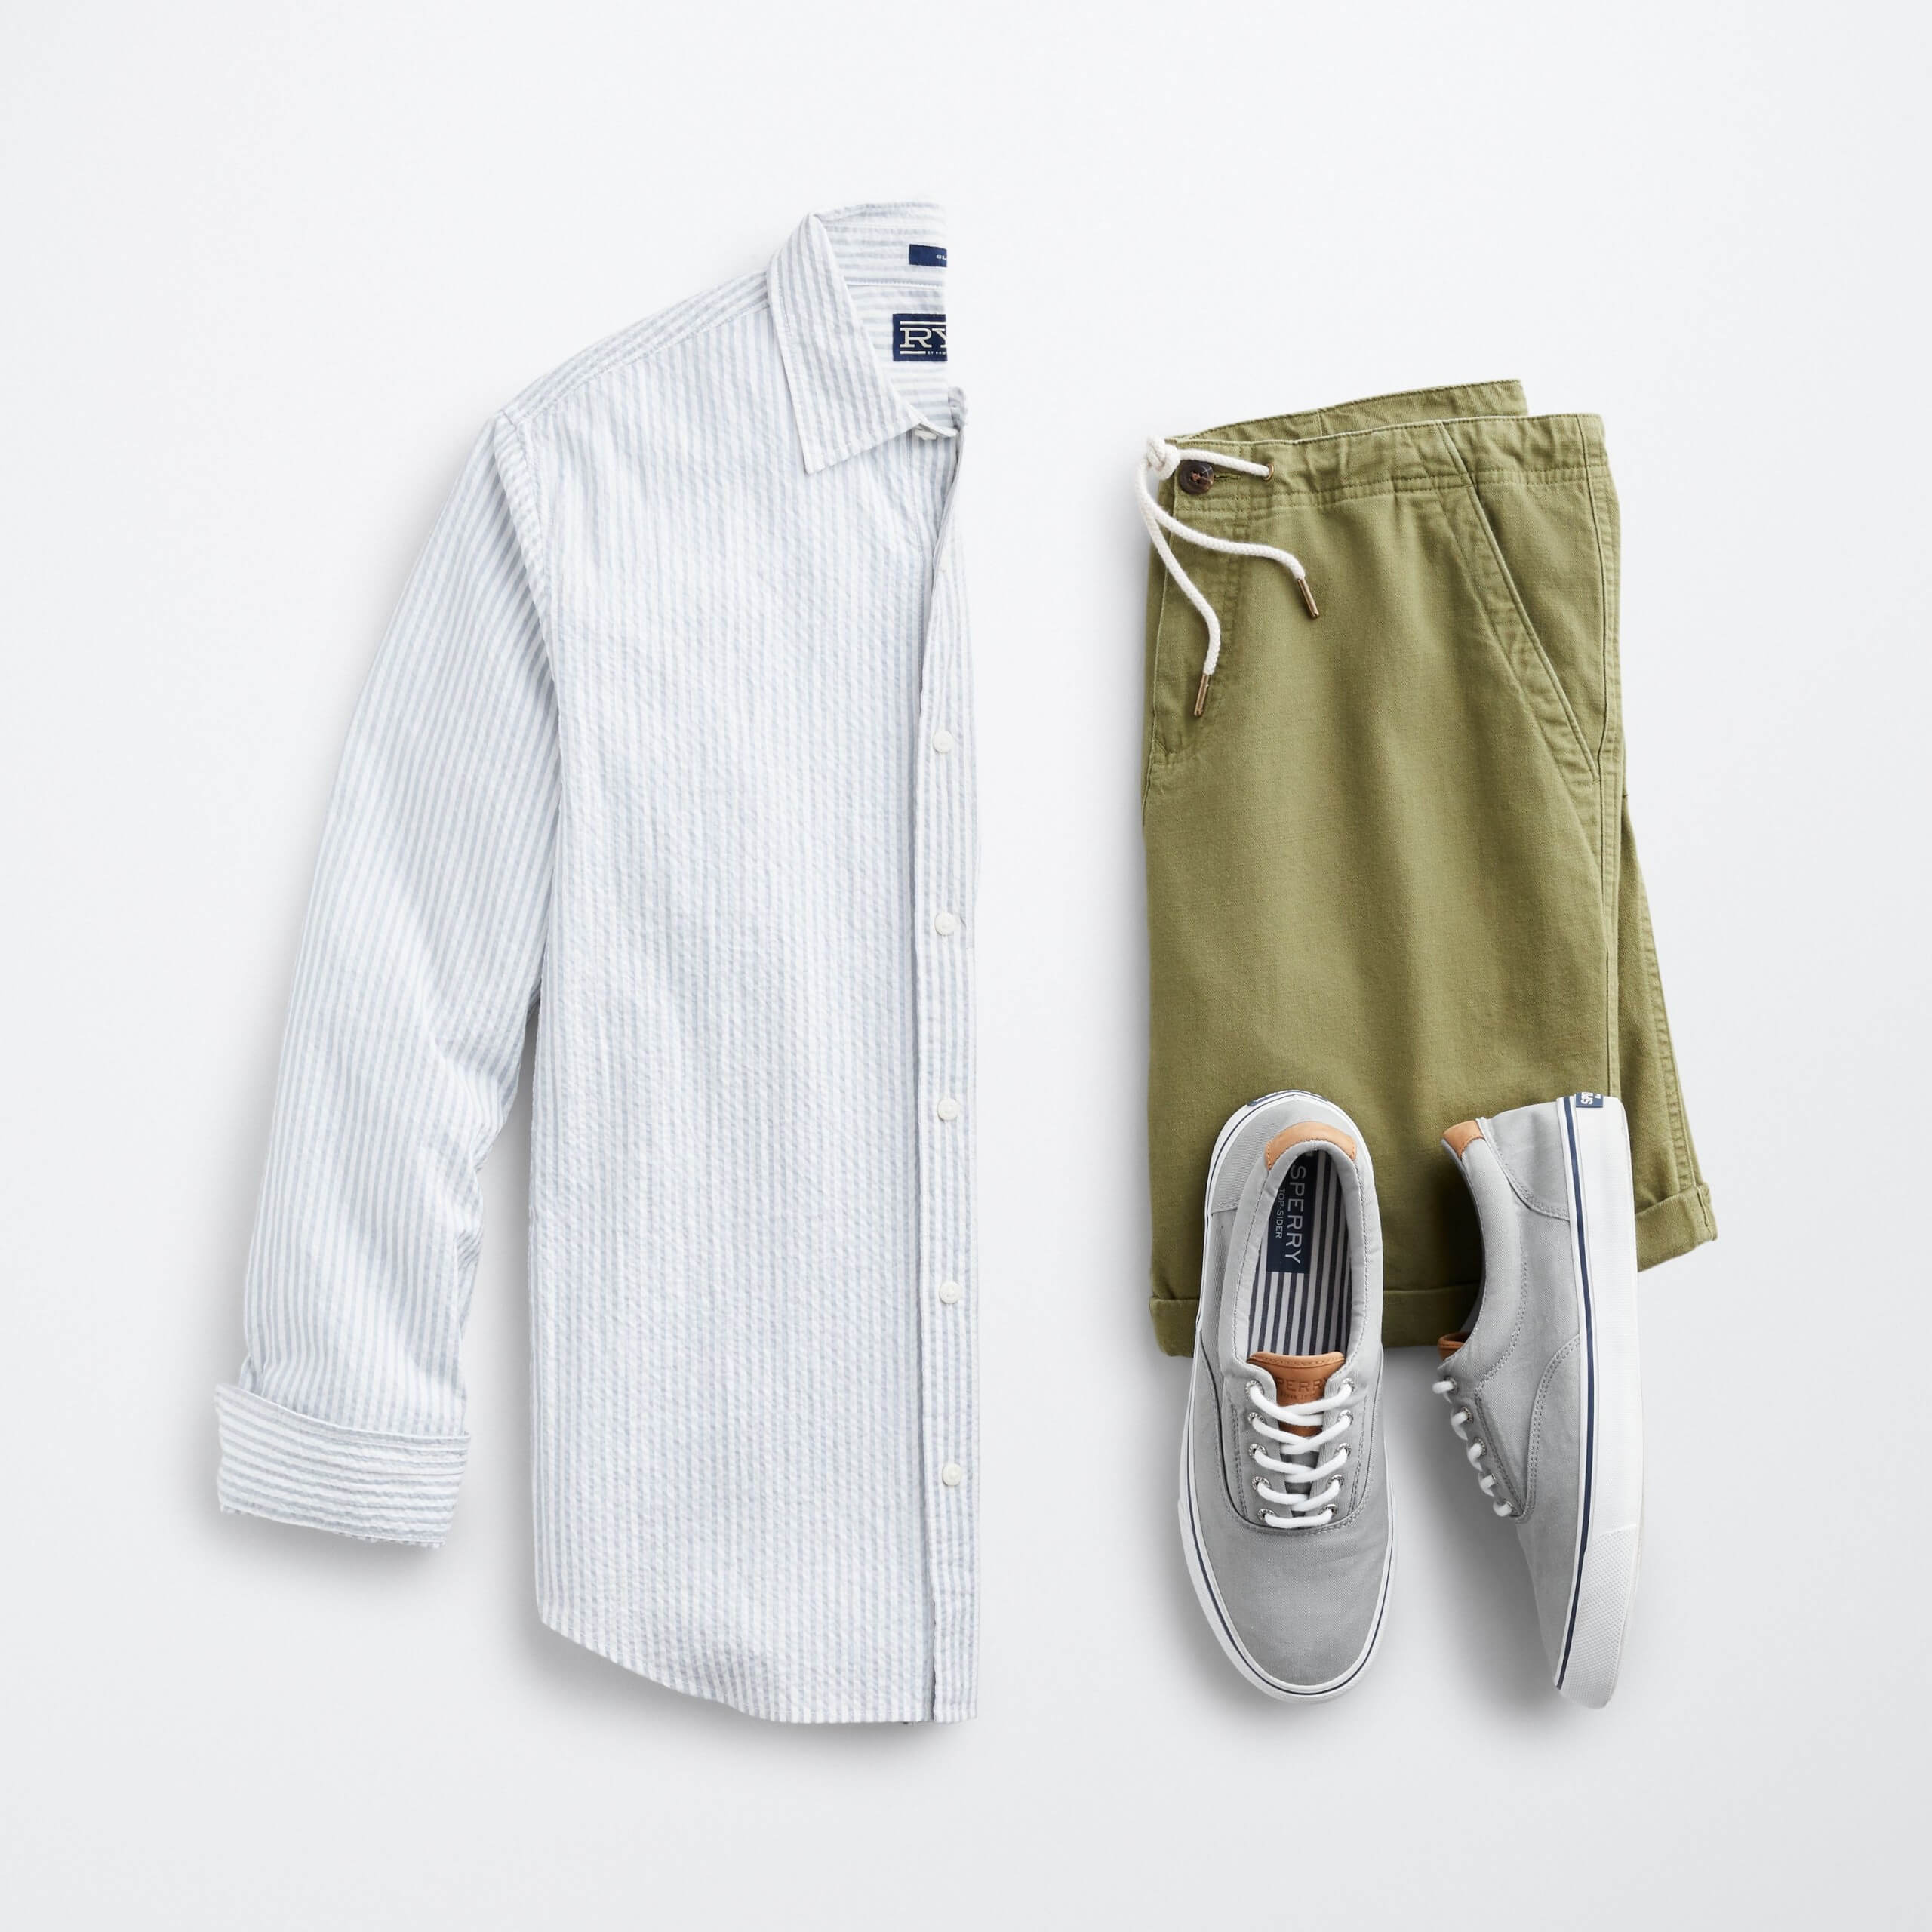 Stitch Fix Men's outfit laydown featuring white and blue striped long-sleeve button-down, olive shorts and grey sneakers.